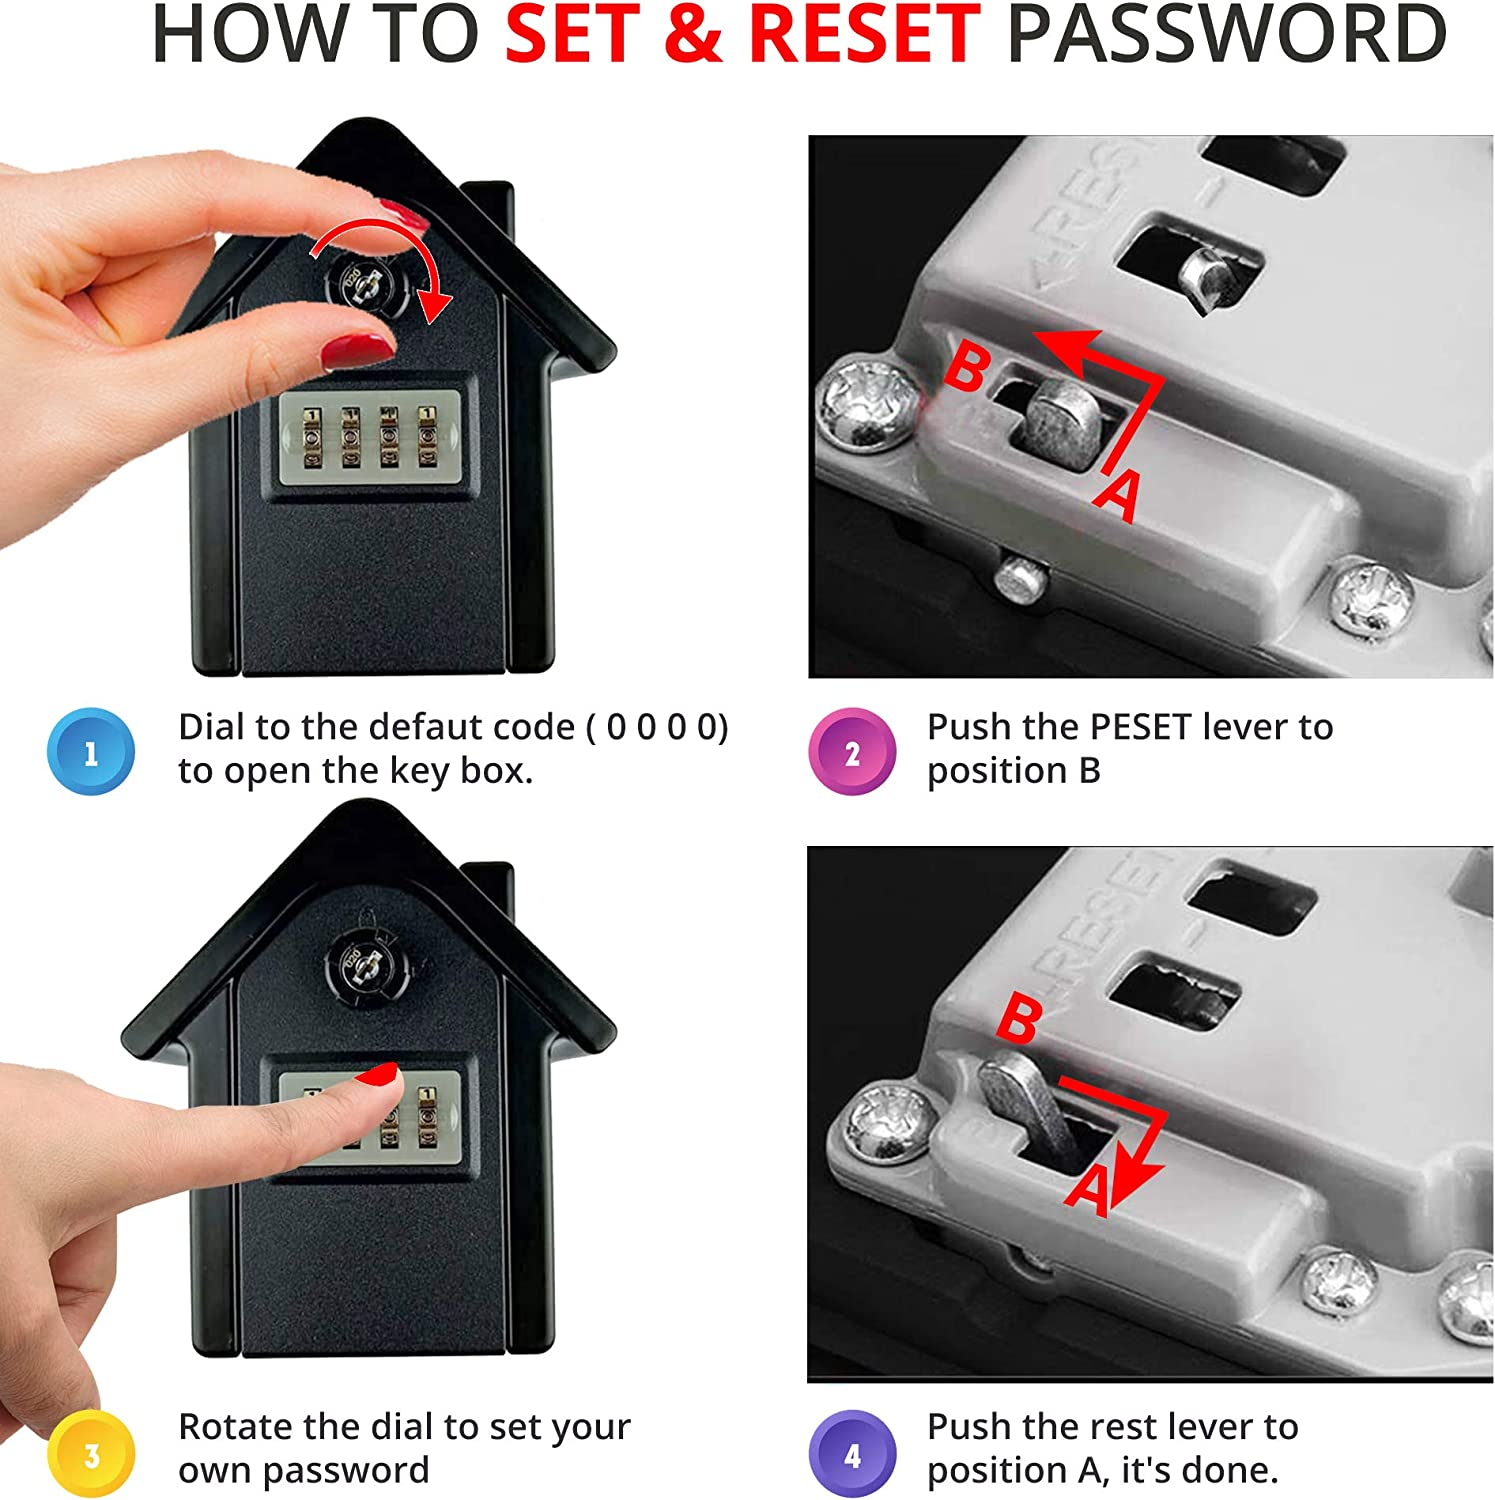 Black PALMAT House Shaped Secure Combination Key Safe Outdoor Wall Mounted for Security with Medium Sized Internal Storage for House or Office Keys and Strong 4 Digit Lock and Additonal Security Key